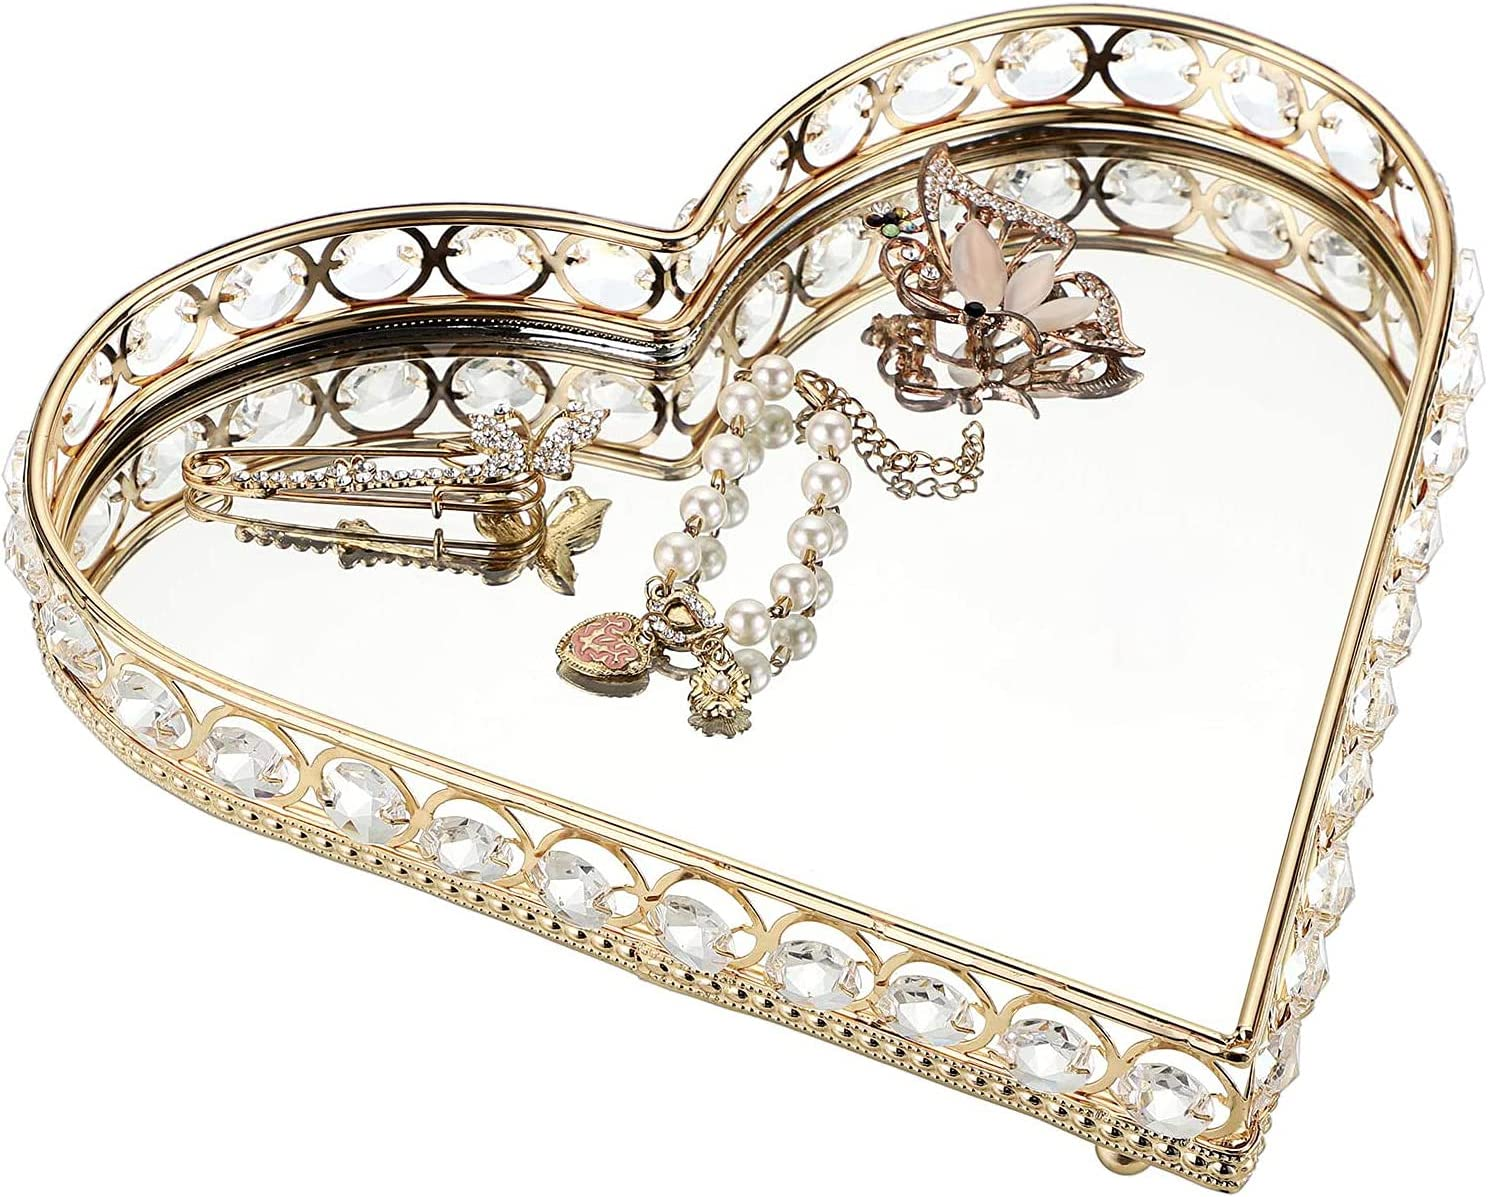 Mirrored Vanity Tray Crystal specialty shop New Free Shipping Jewelry Organizer Heart Shap